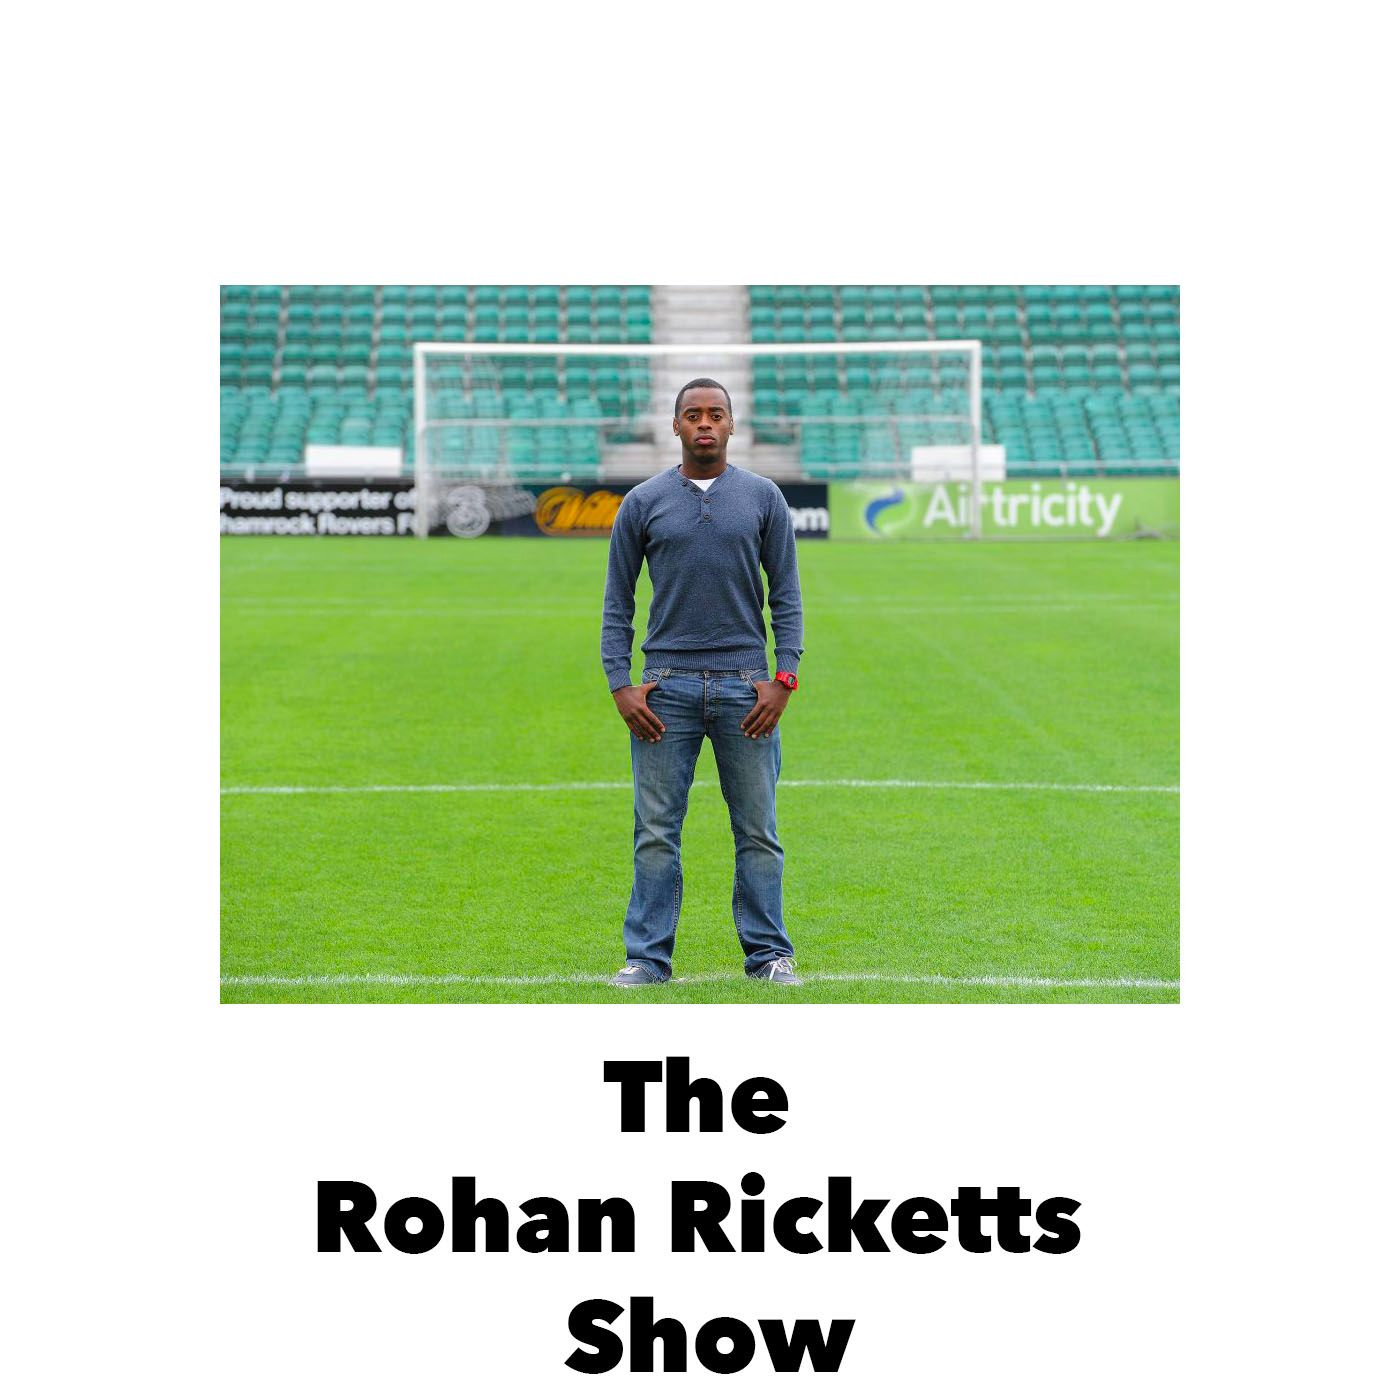 The Rohan Ricketts Show